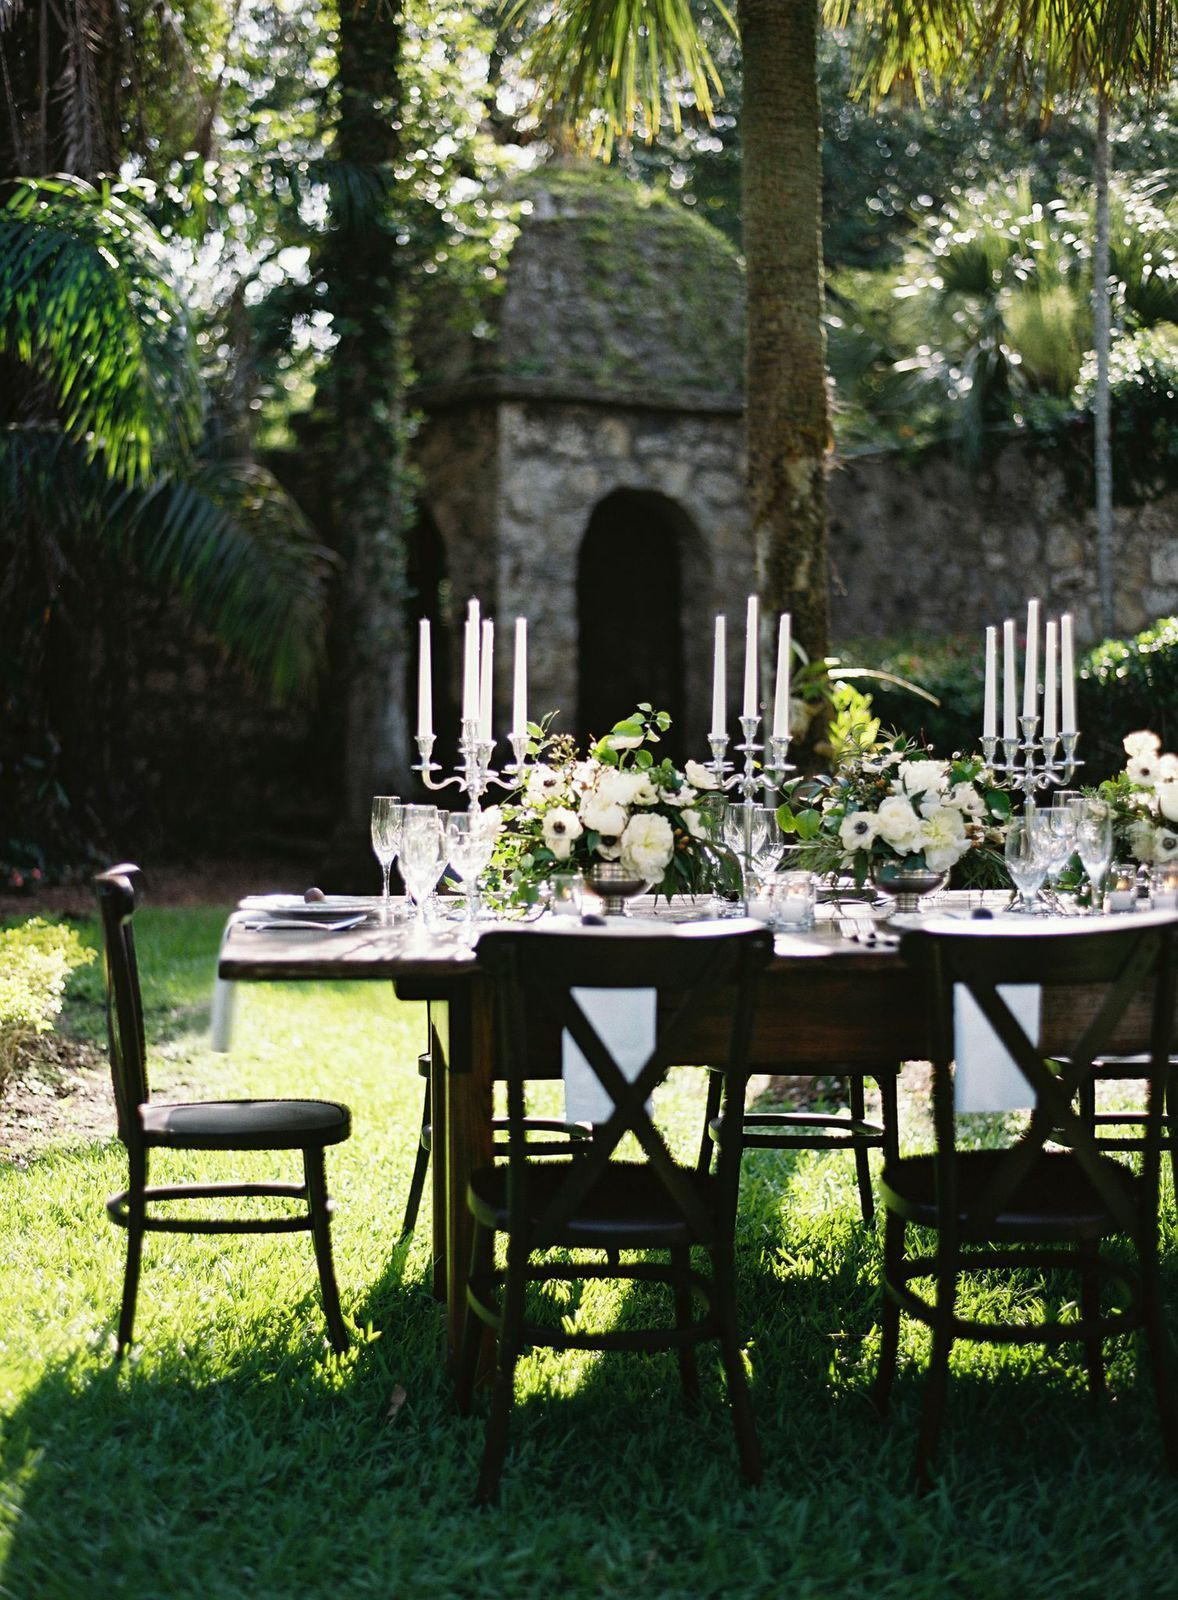 Spanish Affair: Natural, romantic, majestic and Spaniard architecture inspired.